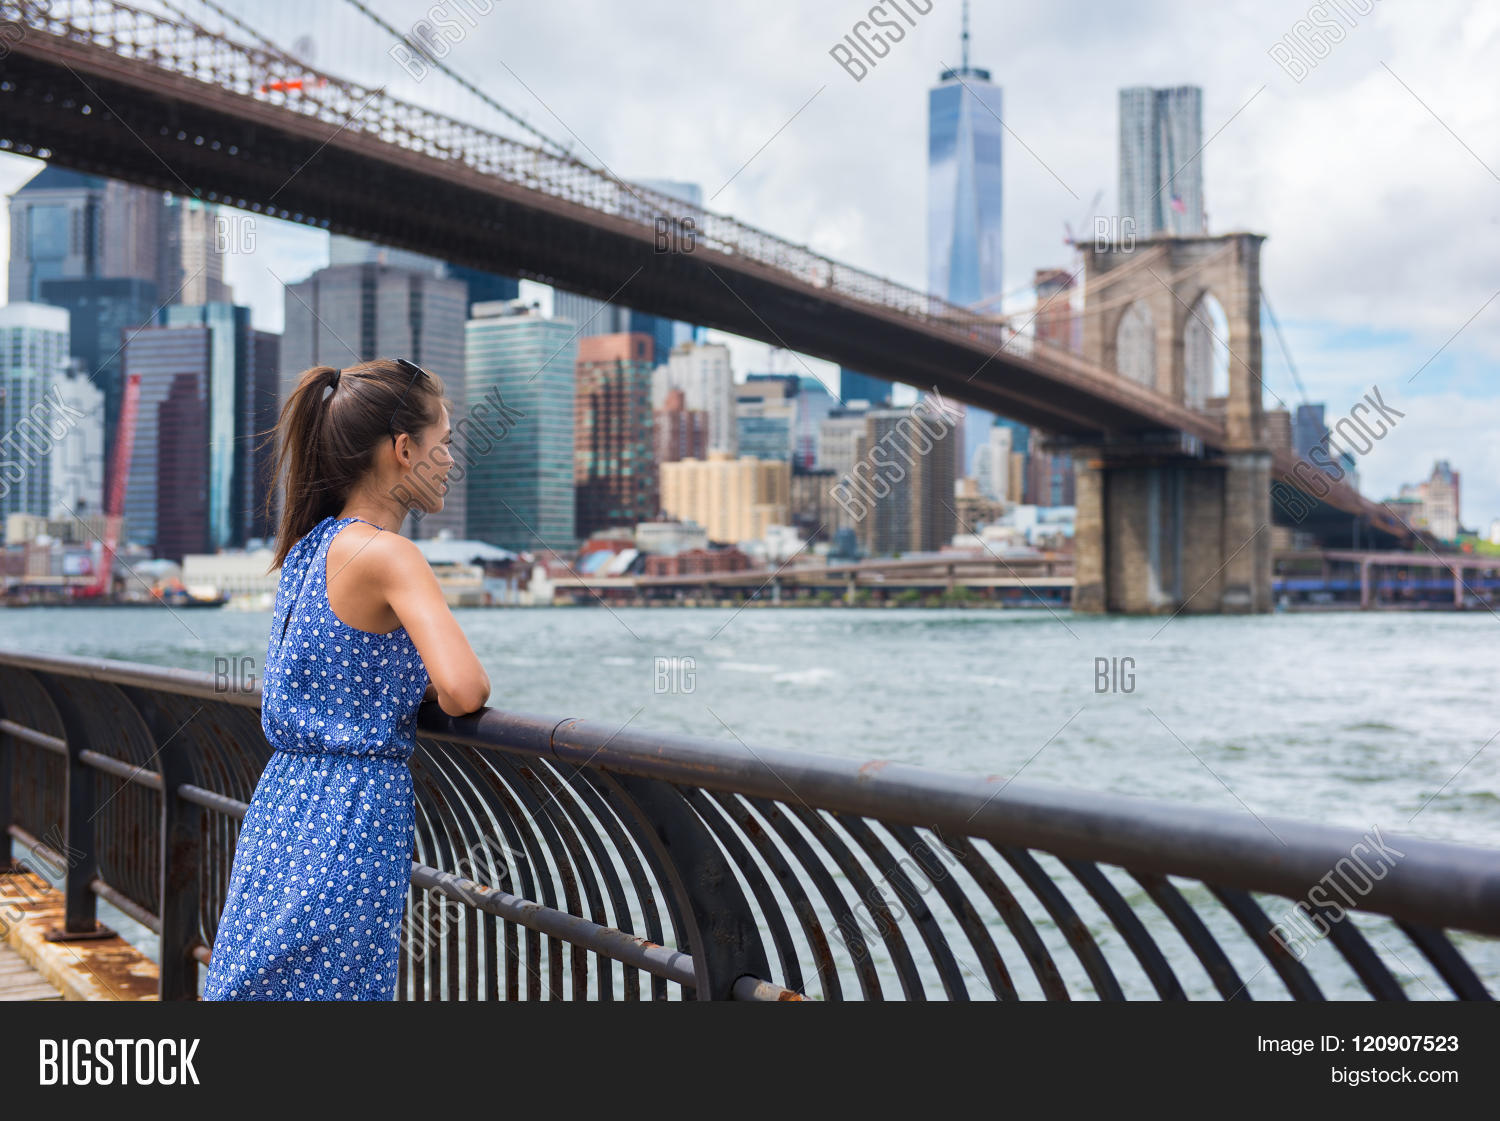 New York city urban woman enjoying view of Brooklyn bridge and NYC skyline  living a happy